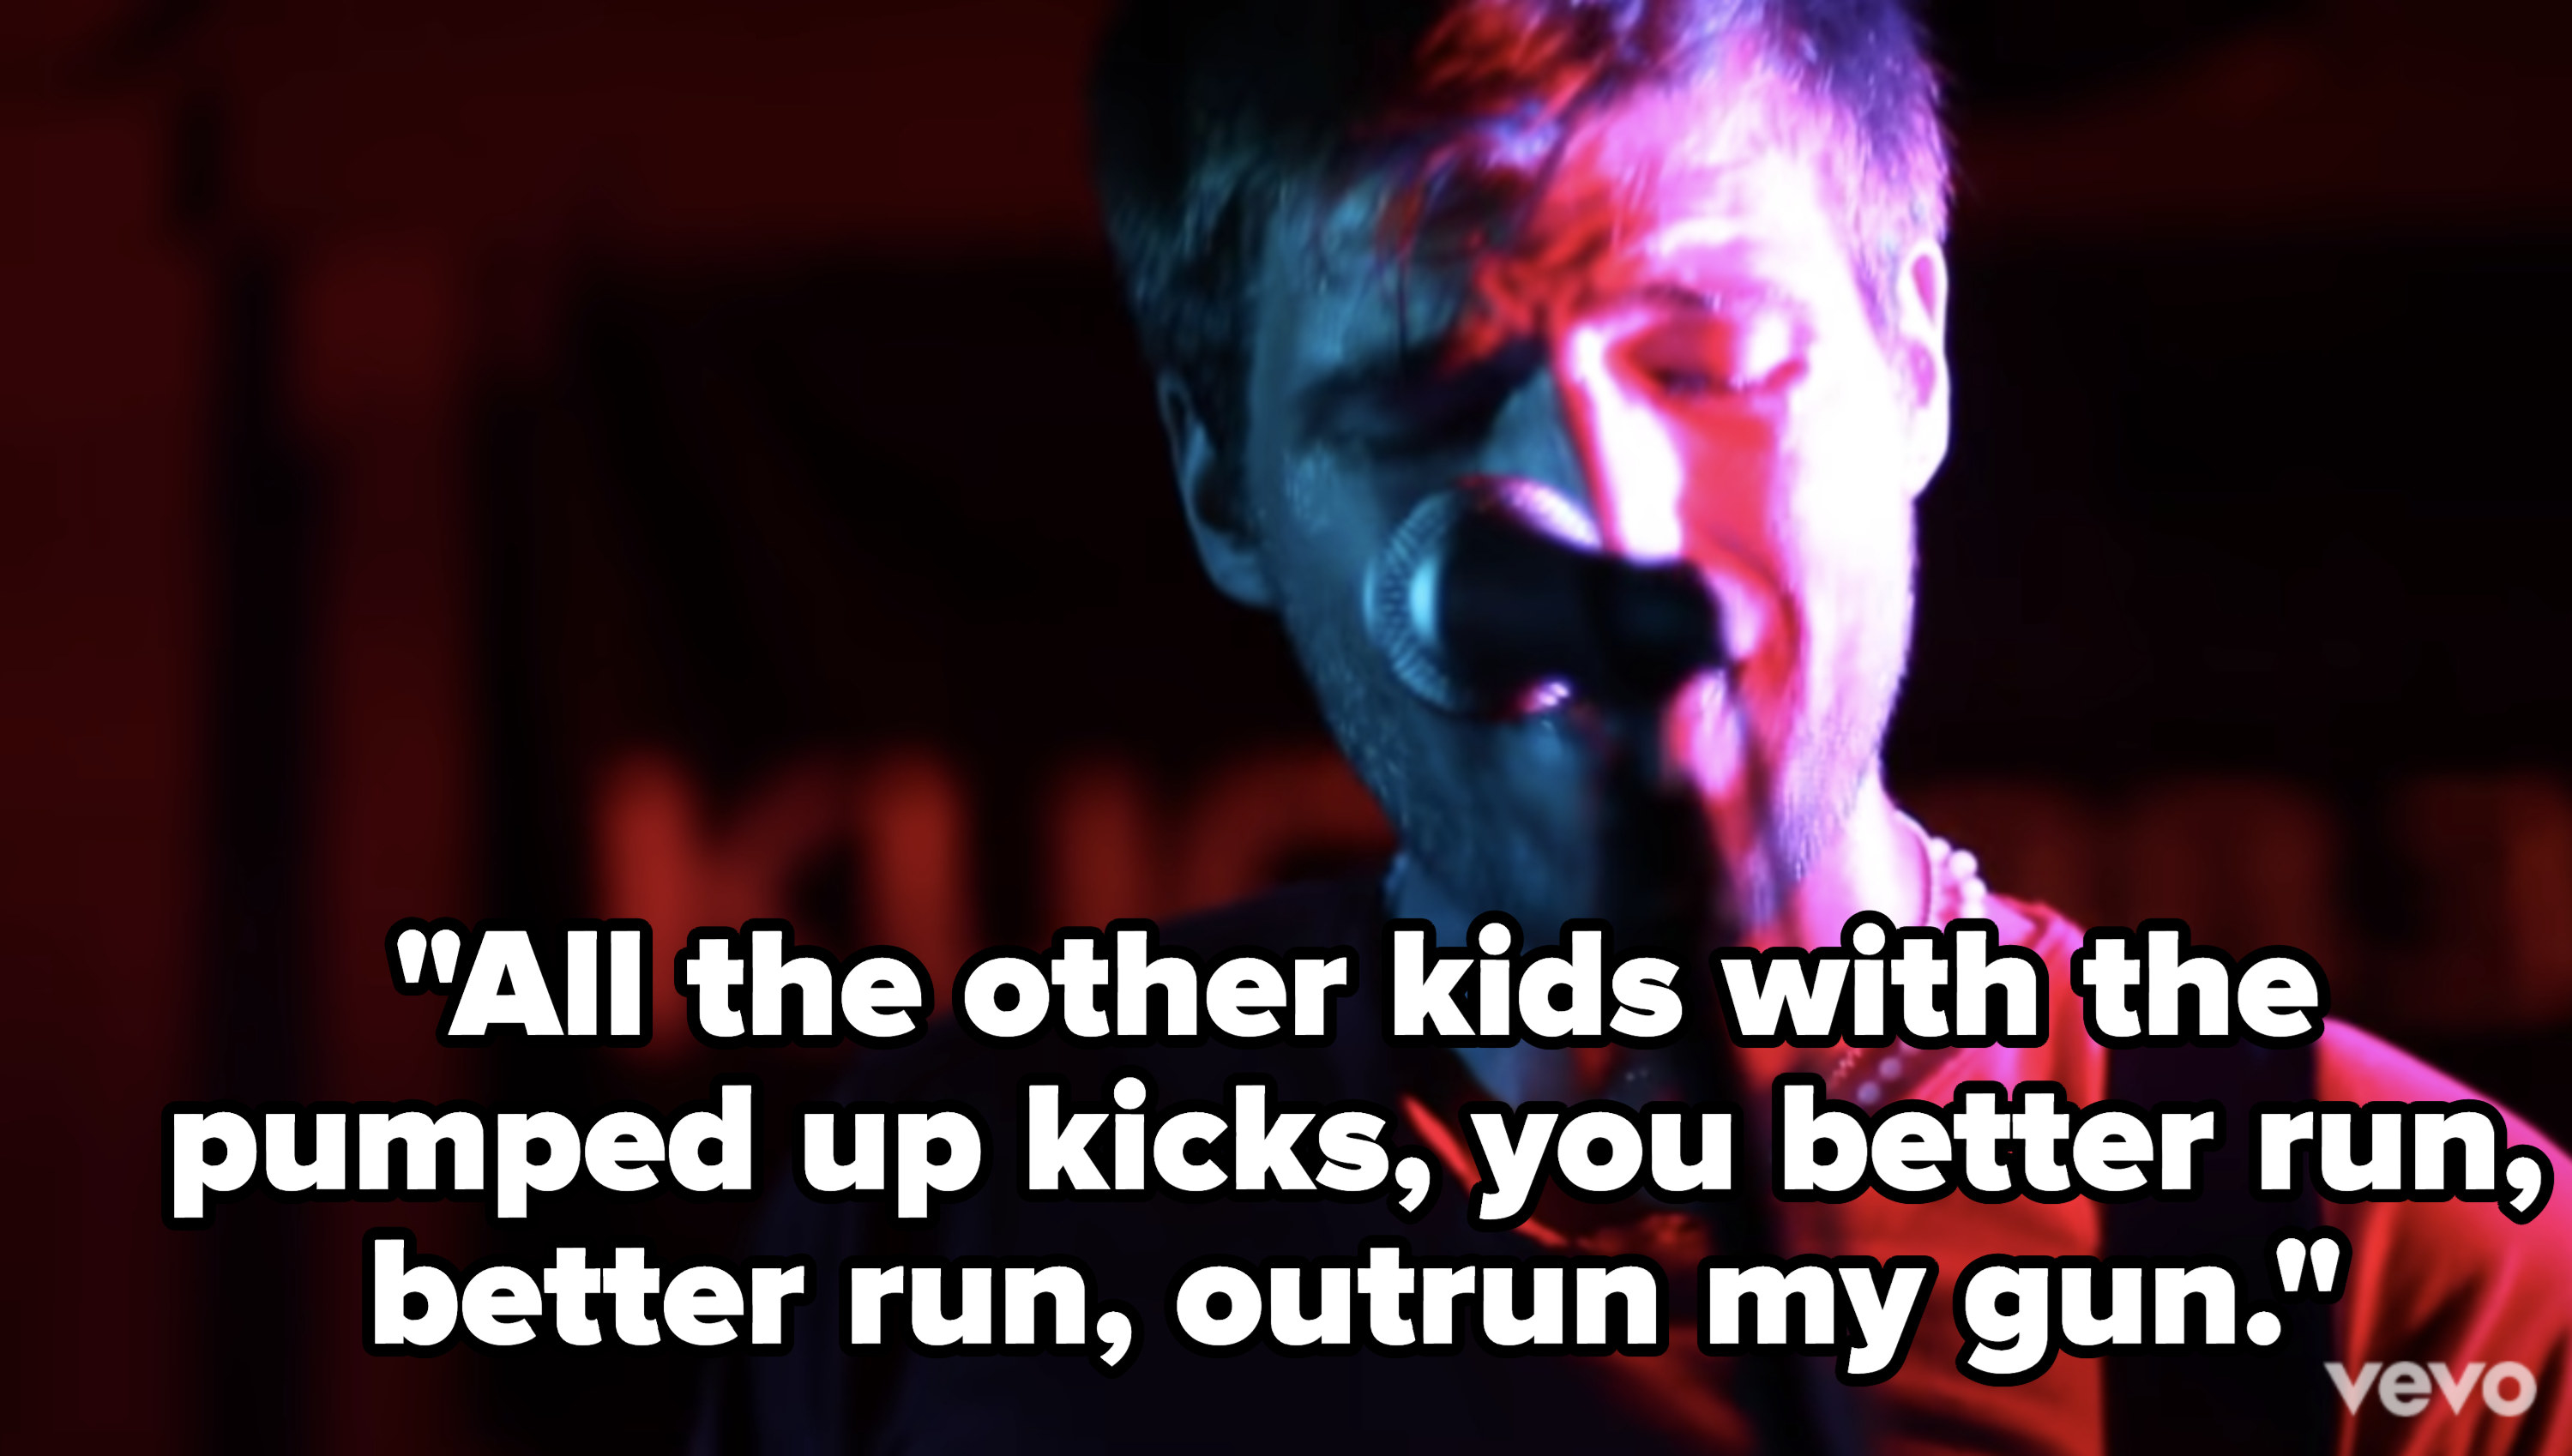 Lyrics: All the other kids with the pumped up kicks, you better run, better run, outrun my gun""